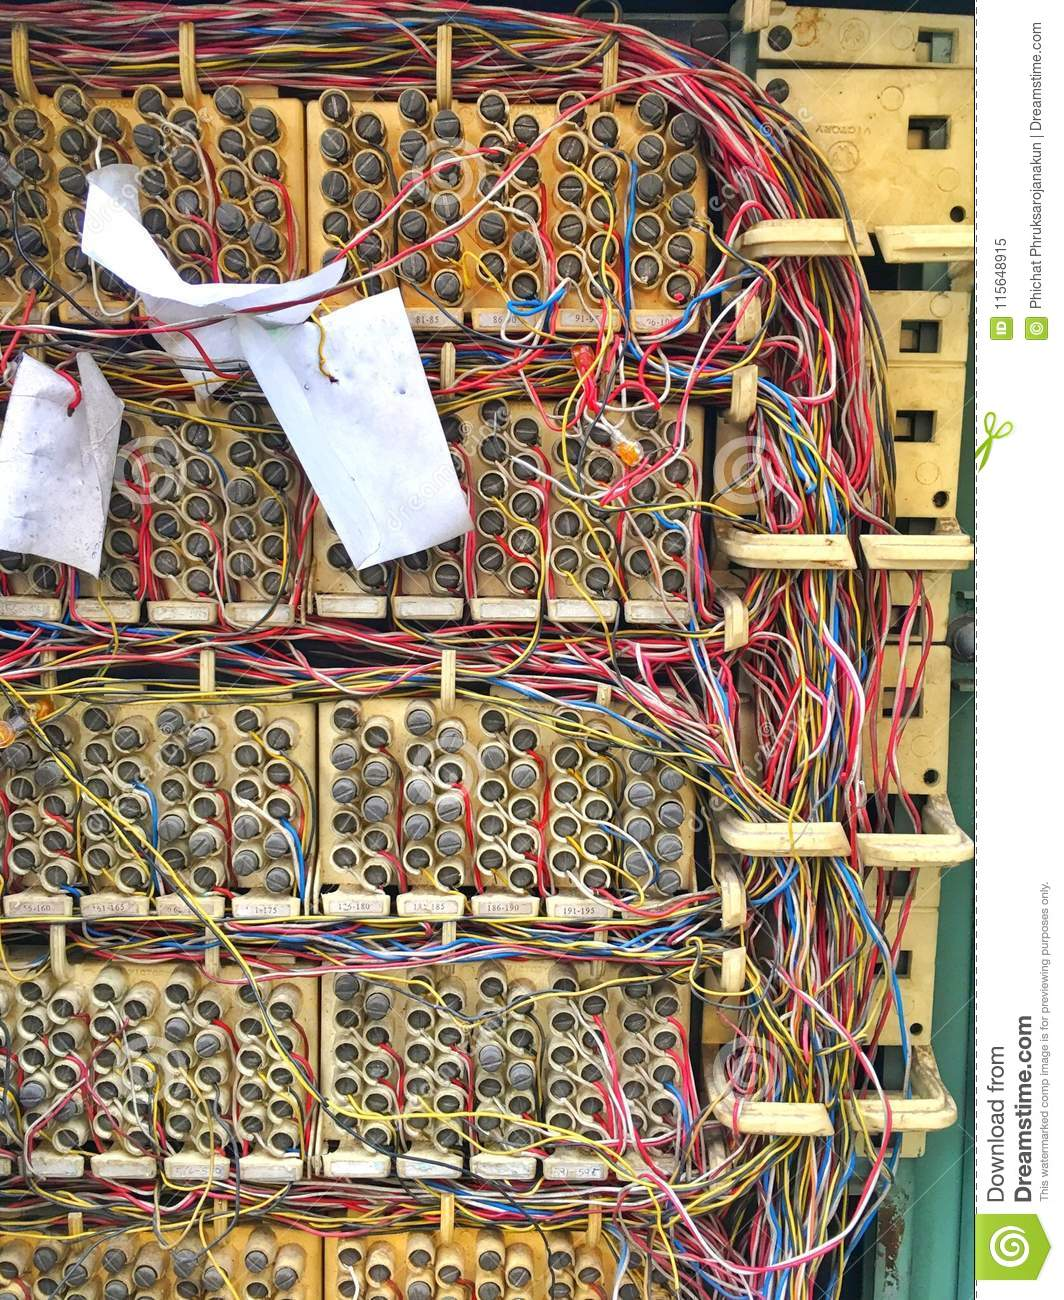 Marvelous Telephone Exchange Circuit And System Stock Image Image Of Repair Wiring Digital Resources Attrlexorcompassionincorg